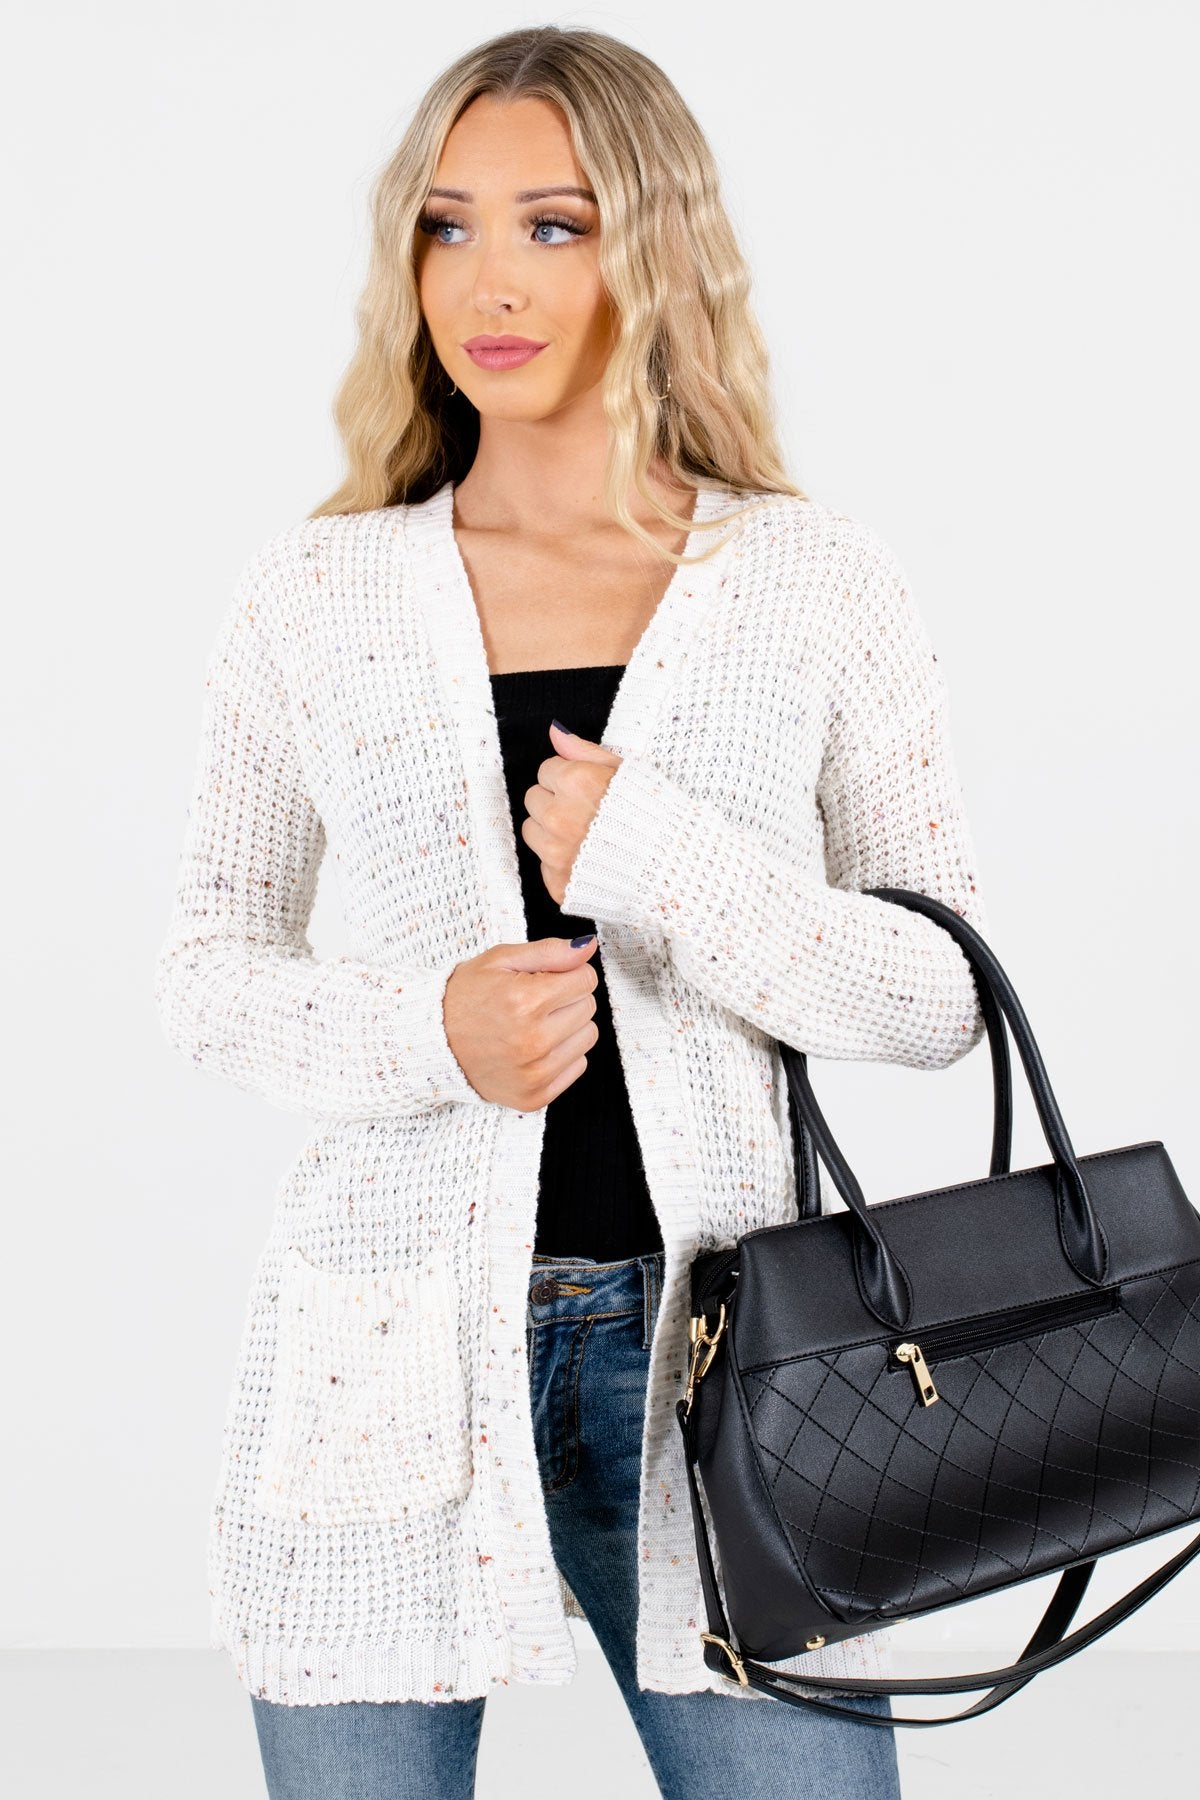 Cream Multicolored Speckle Patterned Boutique Cardigans for Women